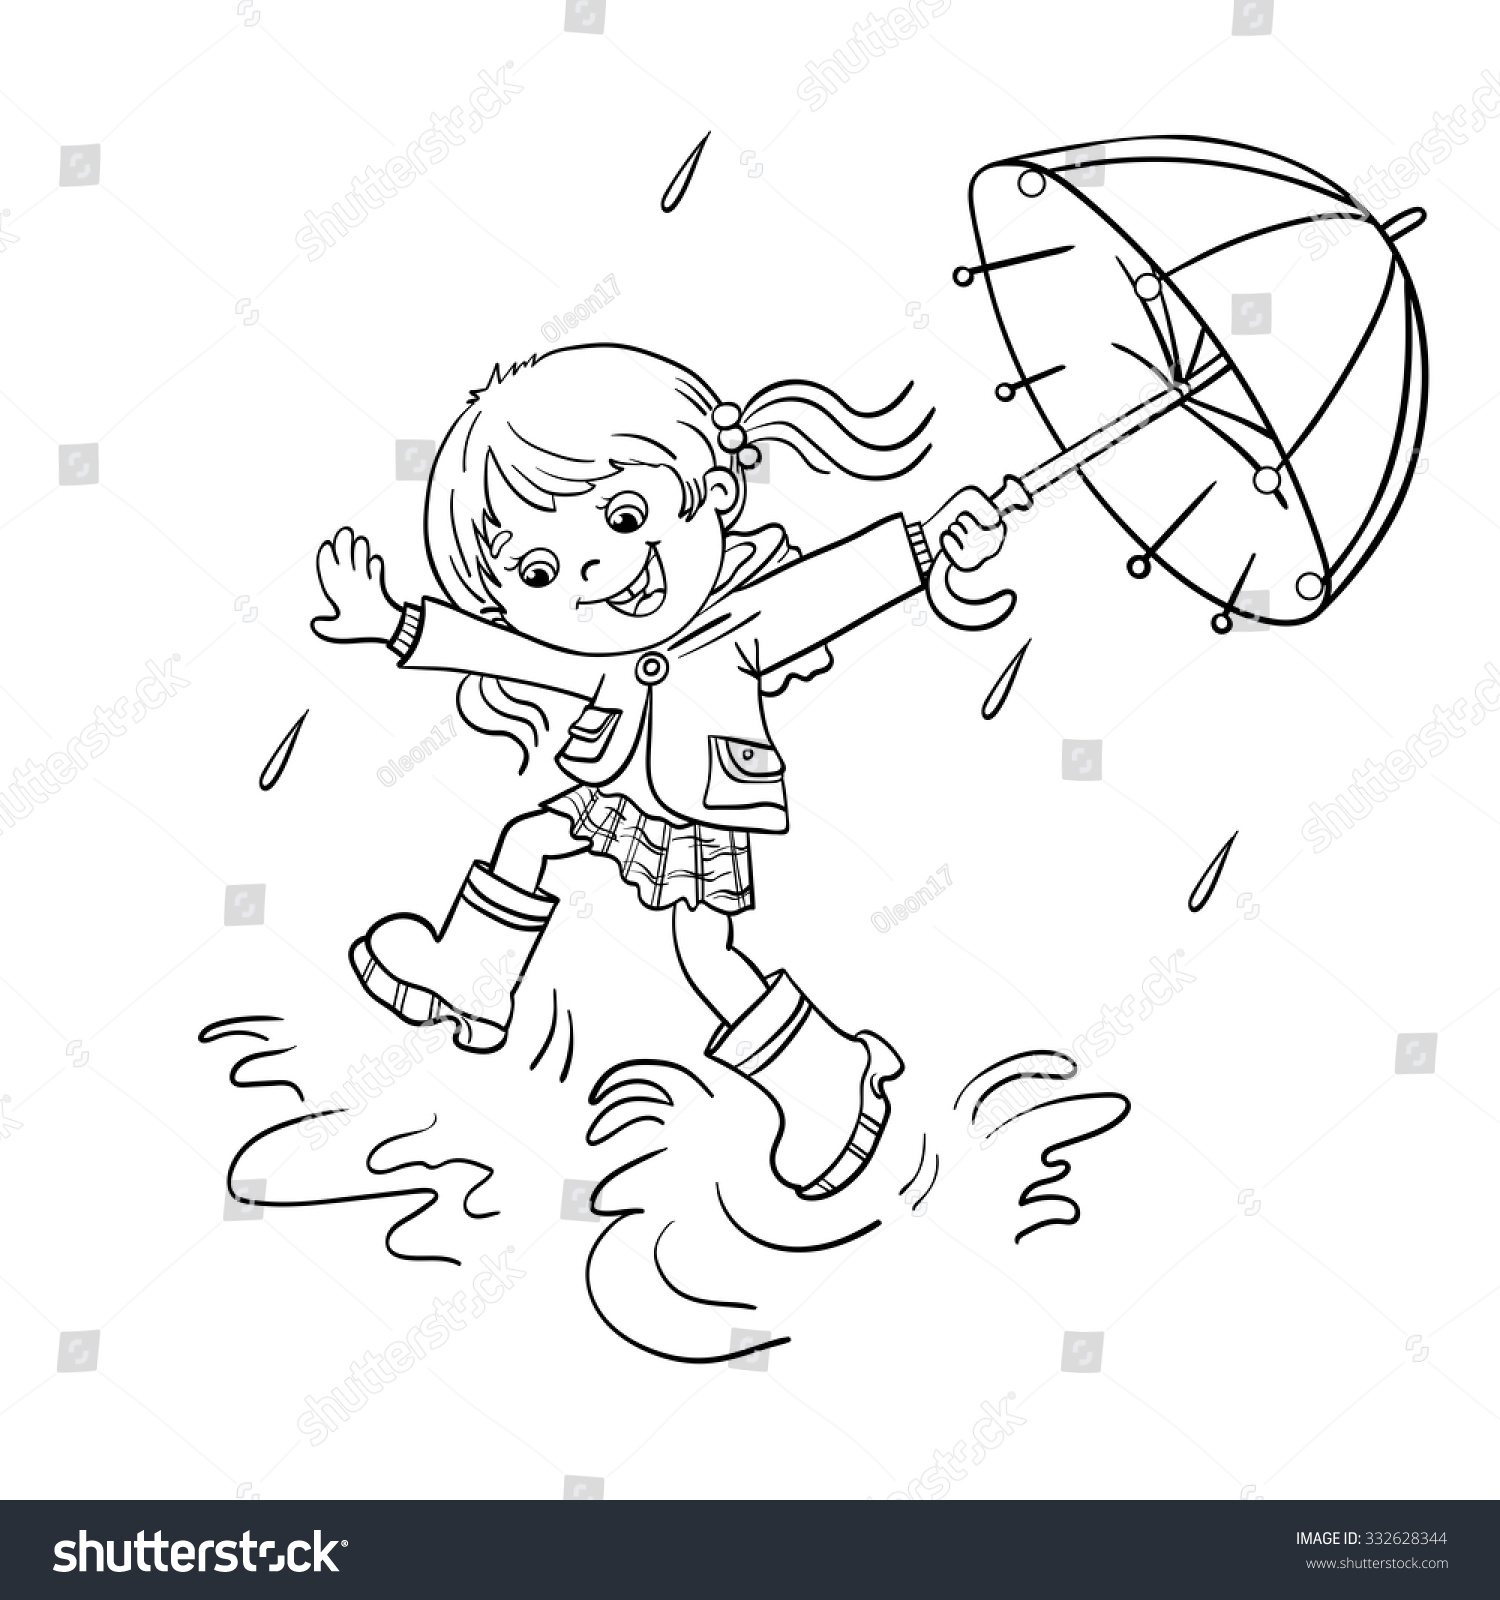 coloring page outline cartoon joyful stock vector 332628344